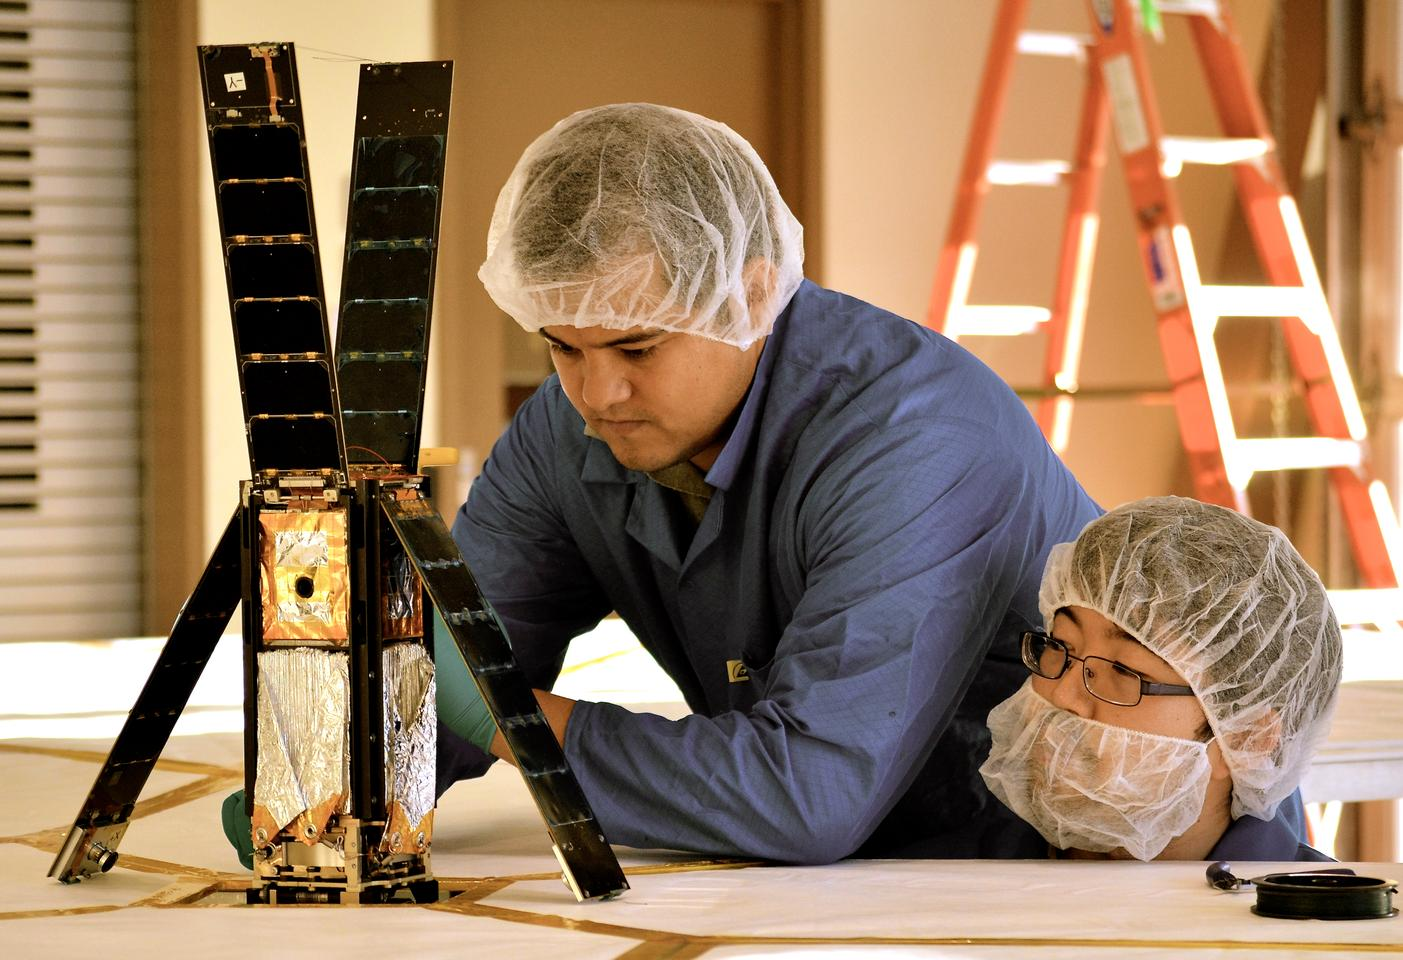 The LightSail CubeSat being tested